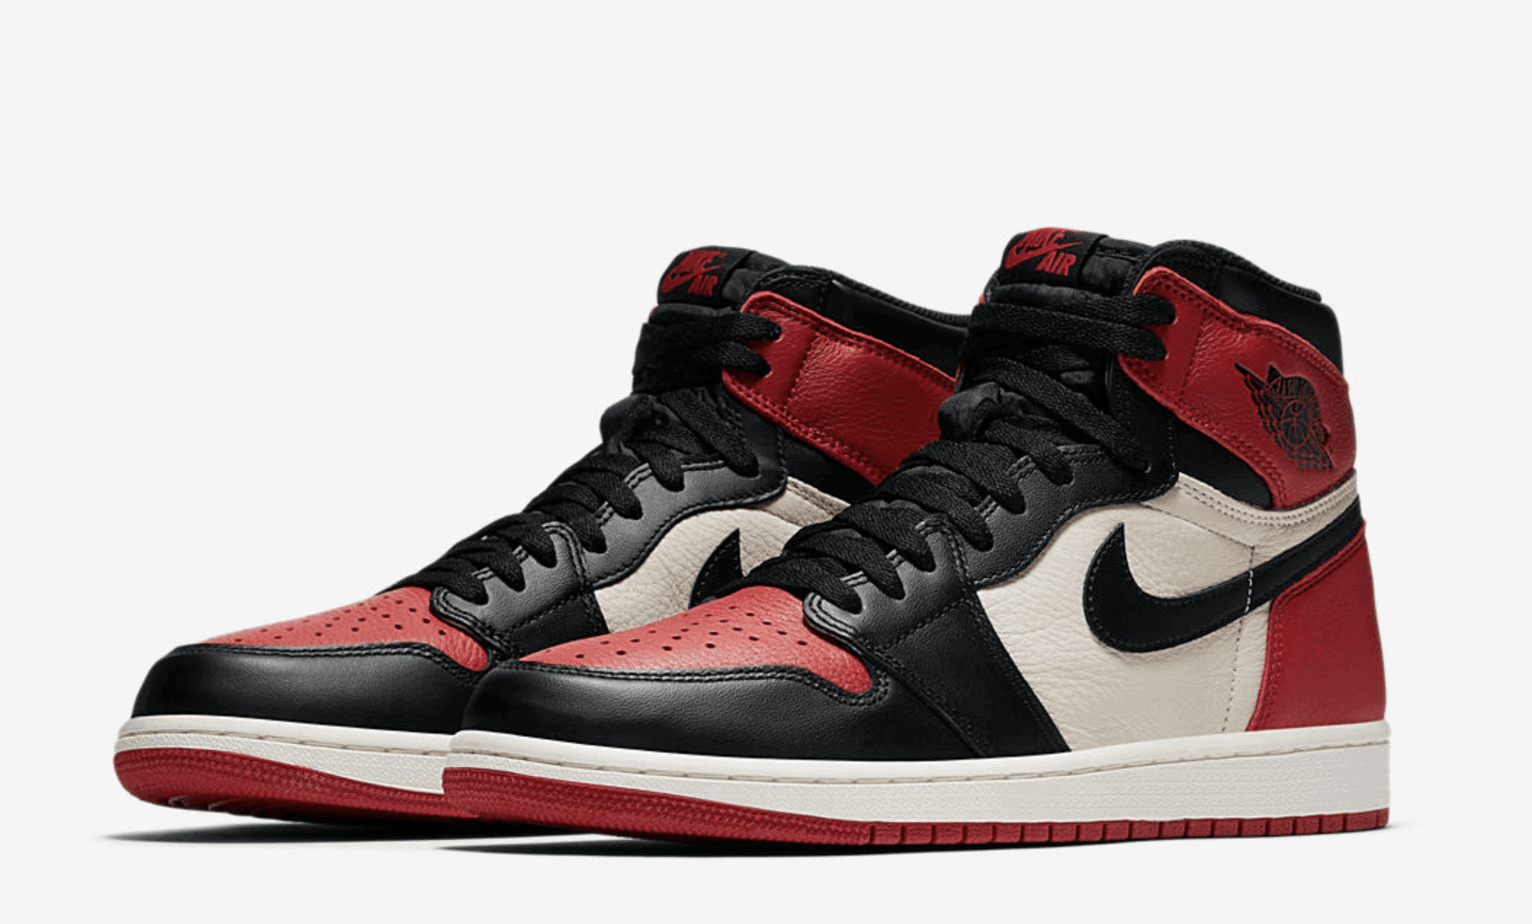 Air Initial Jordan 1 Valeur Requise